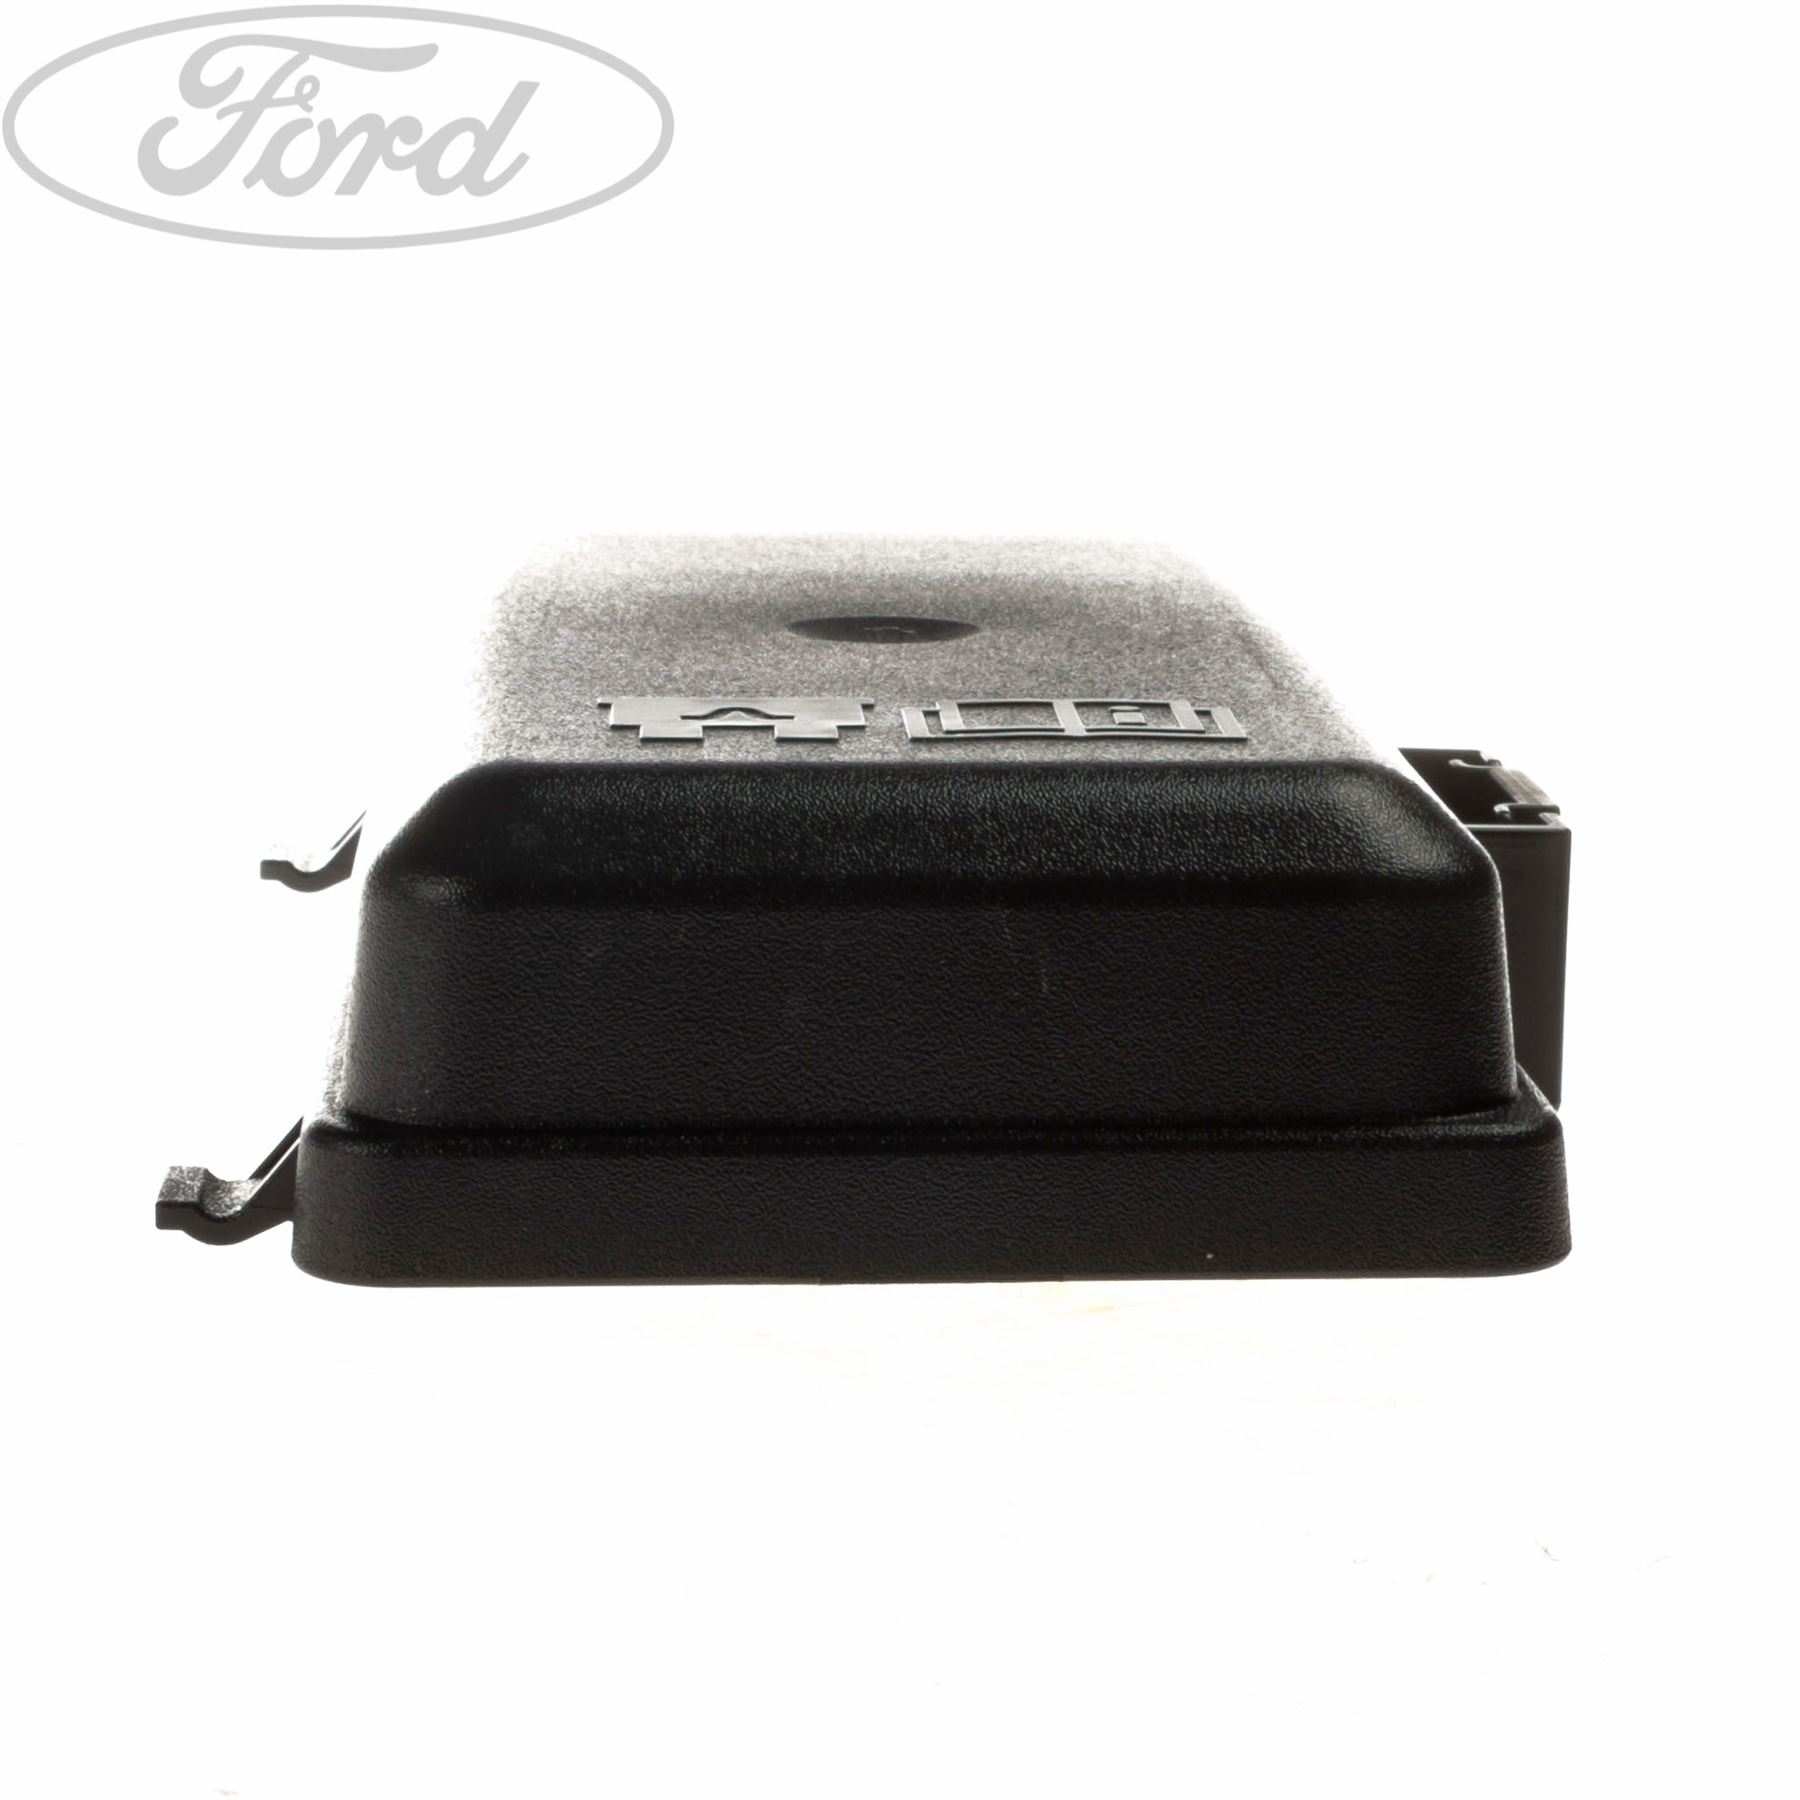 Genuine Ford Transit Mk 7 Additional Fuse Box Cover 1579004 Ebay On